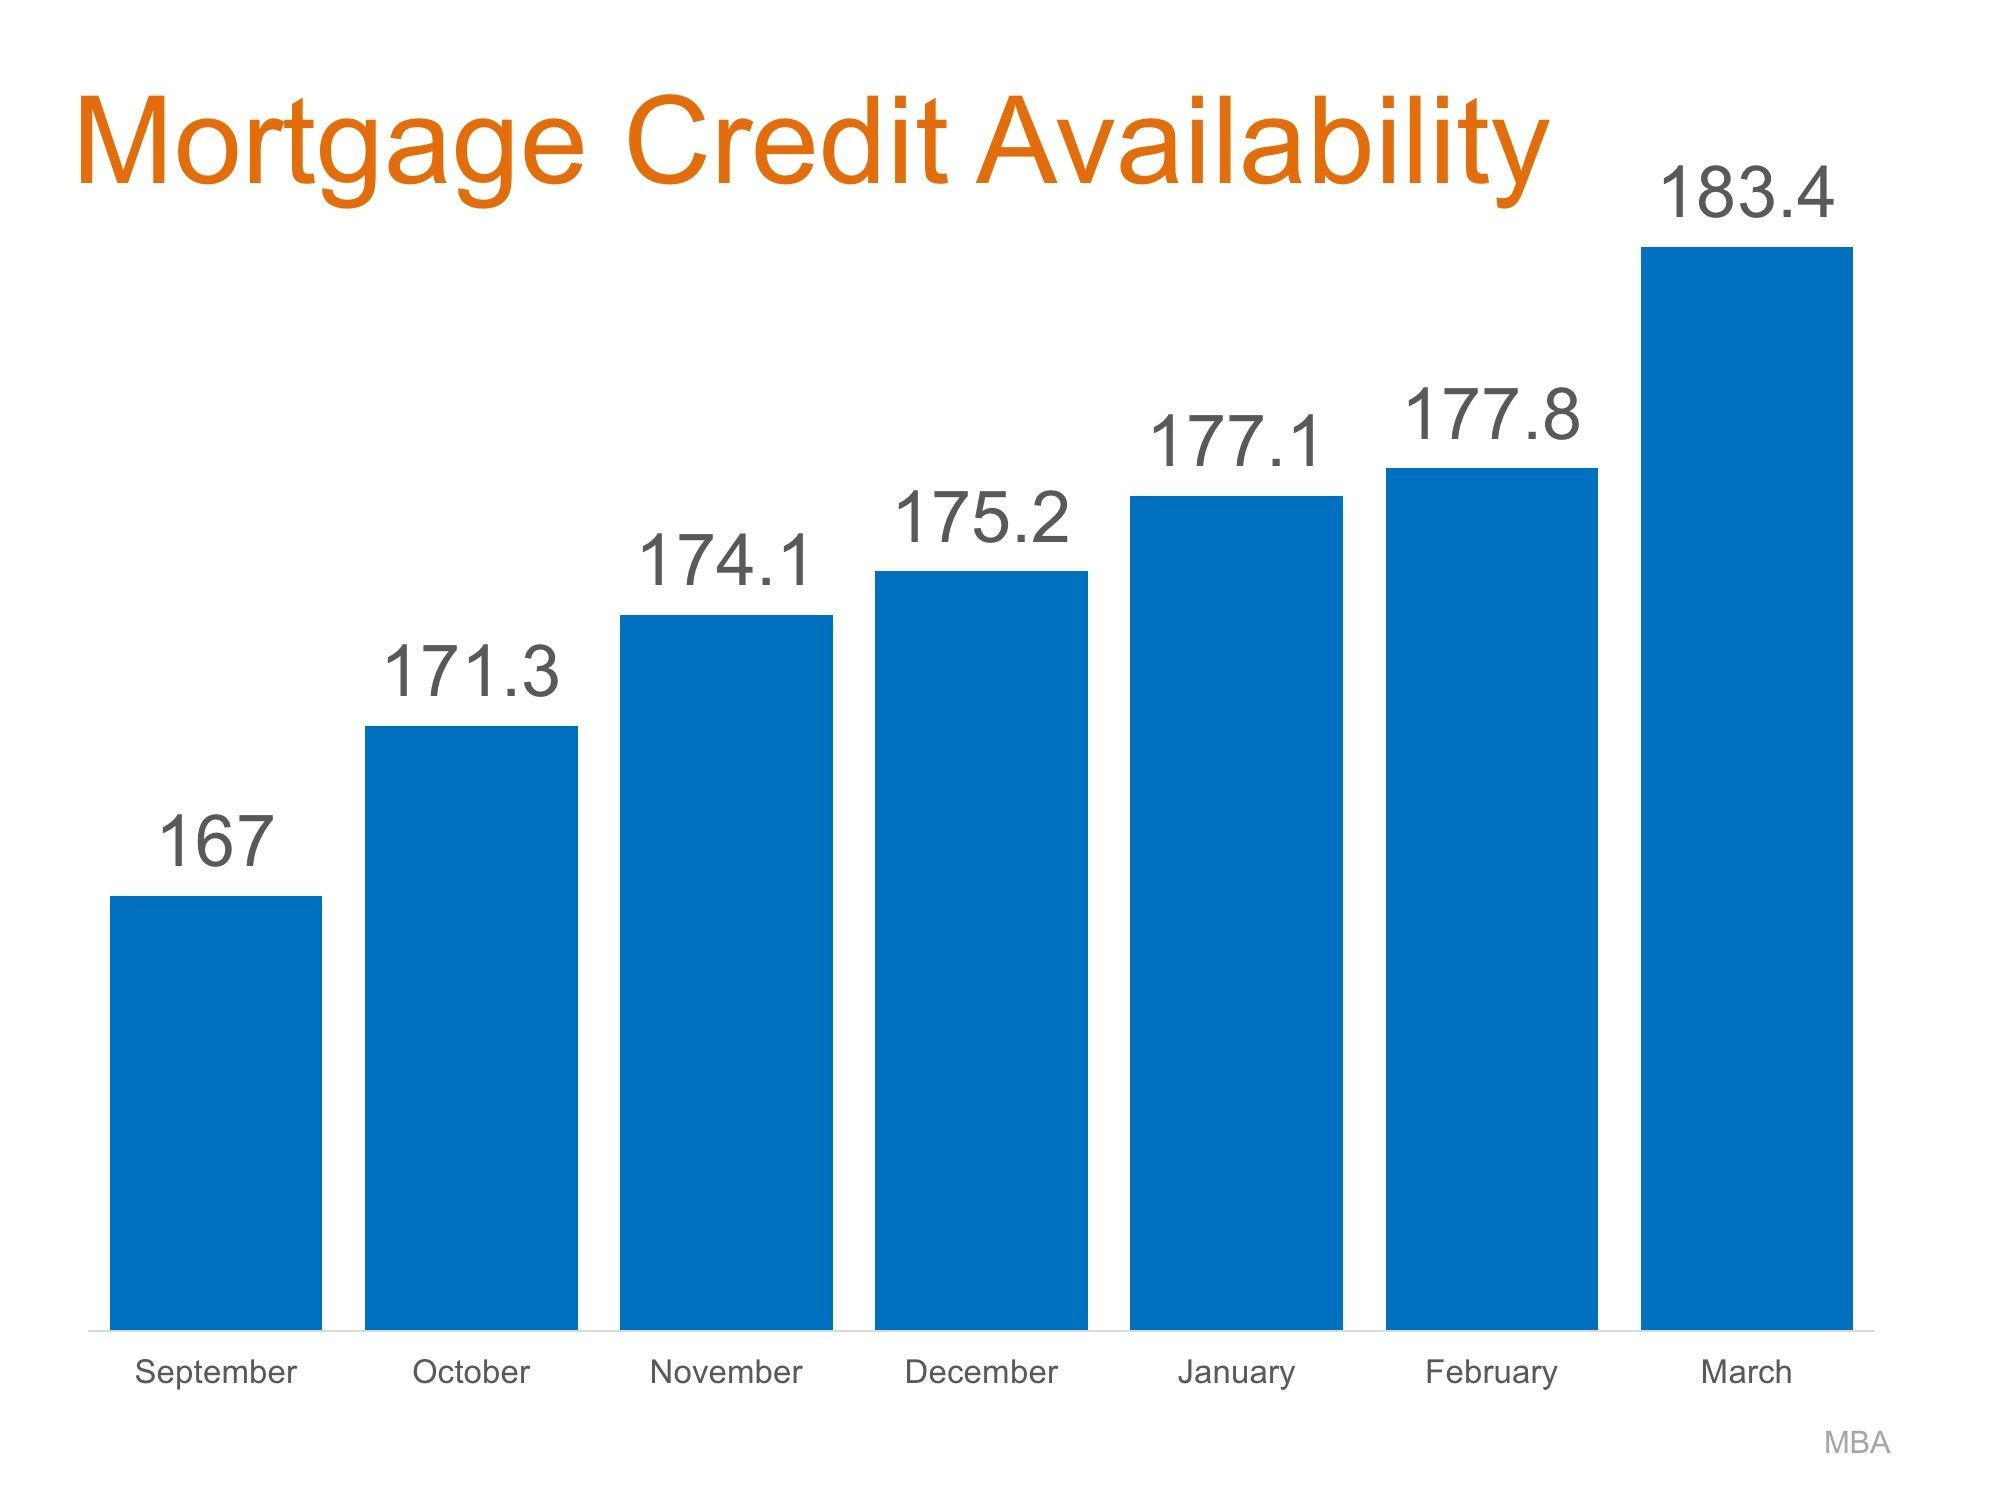 mortgage-credit-availability-improving-recently-01